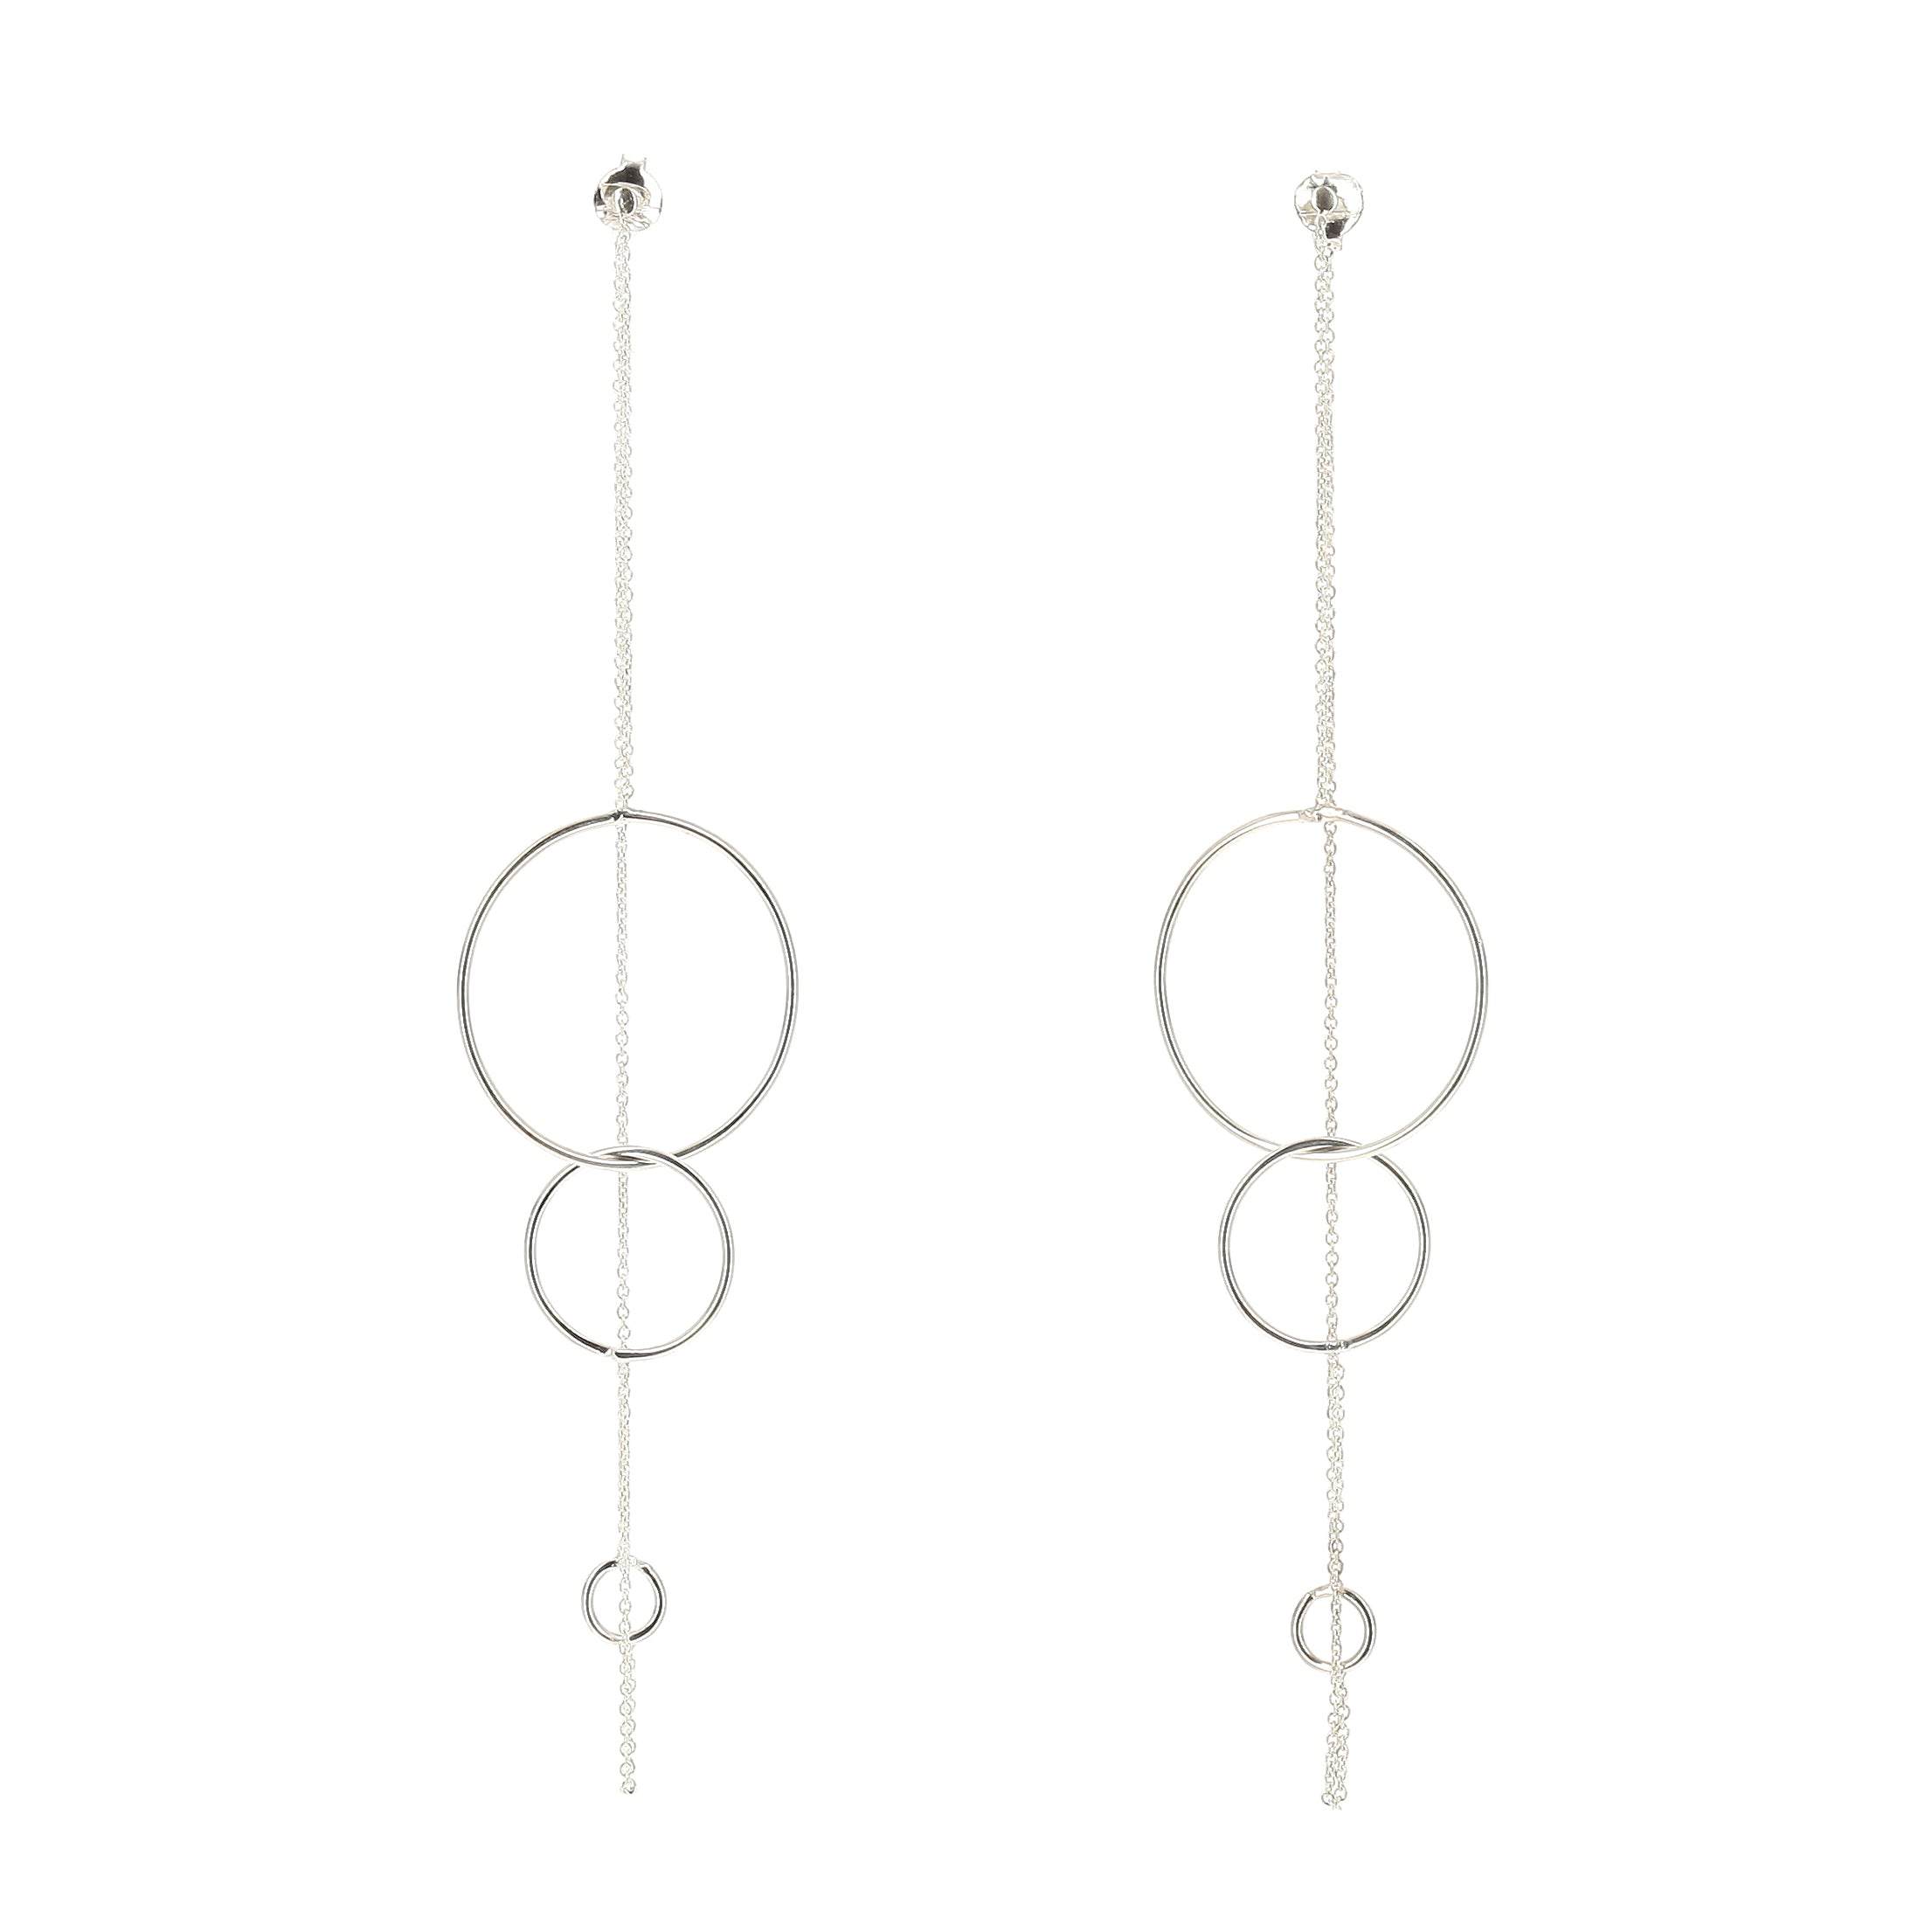 Aurore Havenne Long Trinity Silver earrings minimalist jewellery bijoux simple elegant designer belge